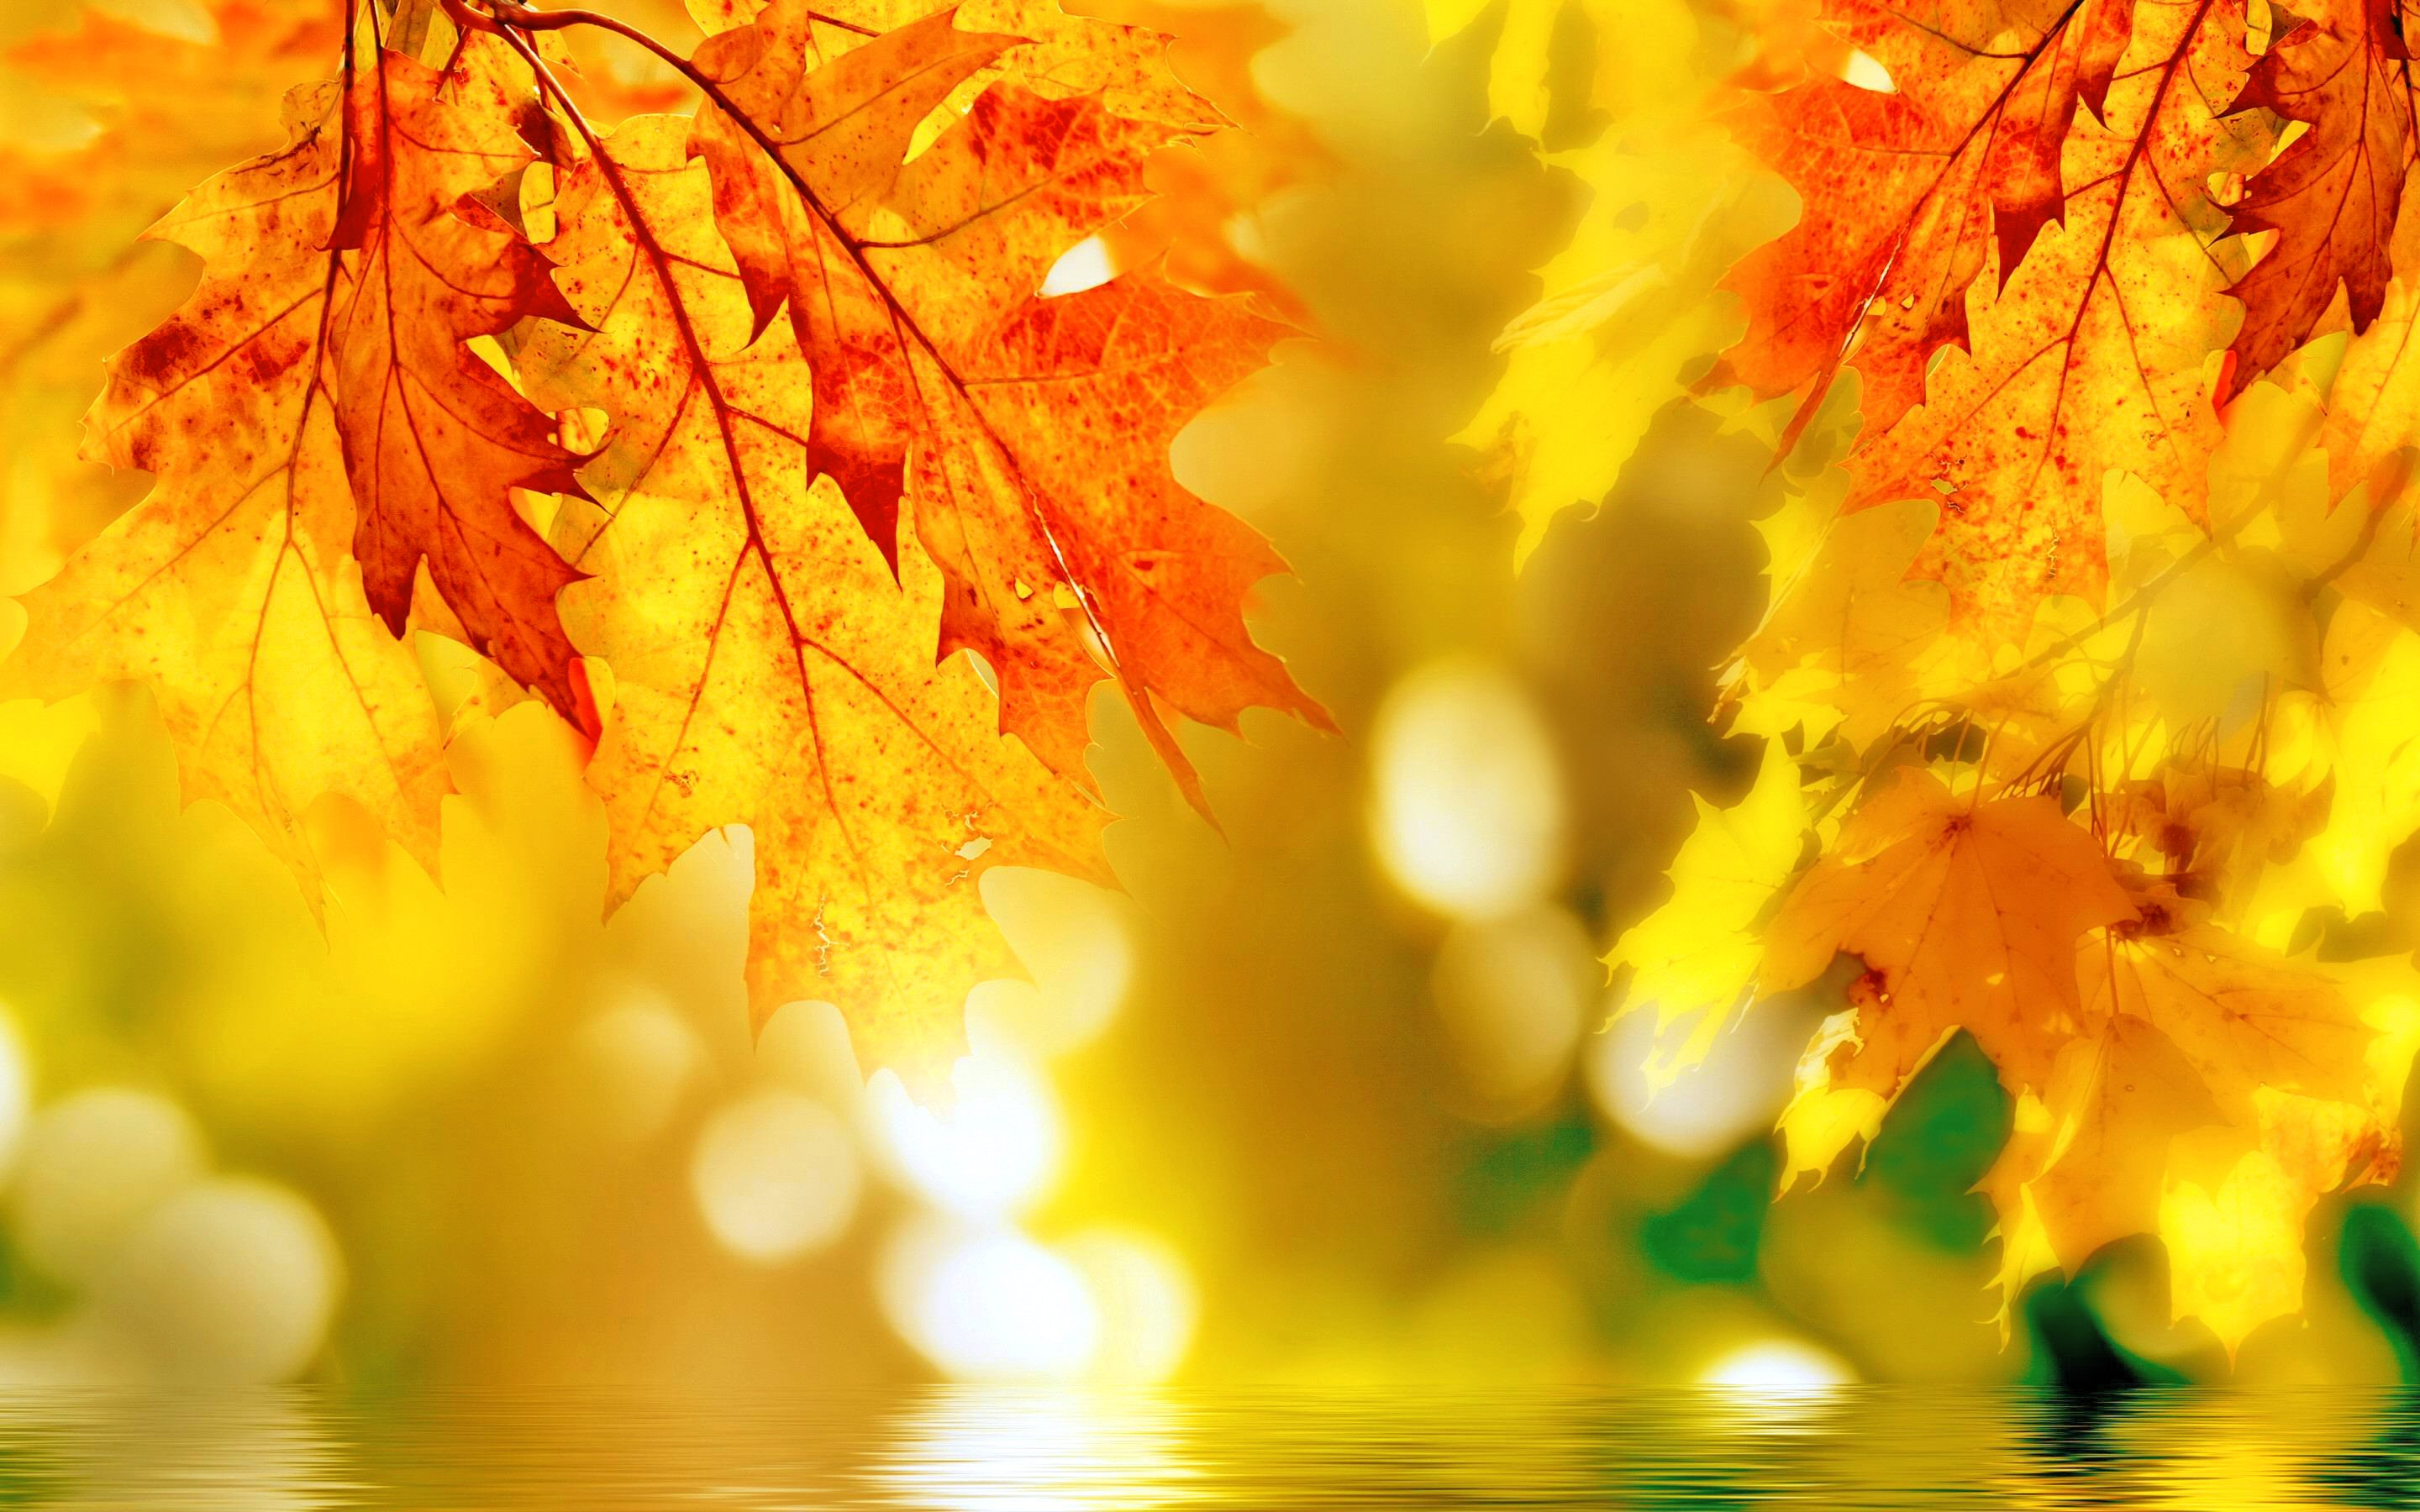 Fall Wallpaper For Iphone 6 Plus Nature 31 Autumn Leaves 23november2014sunday 140627